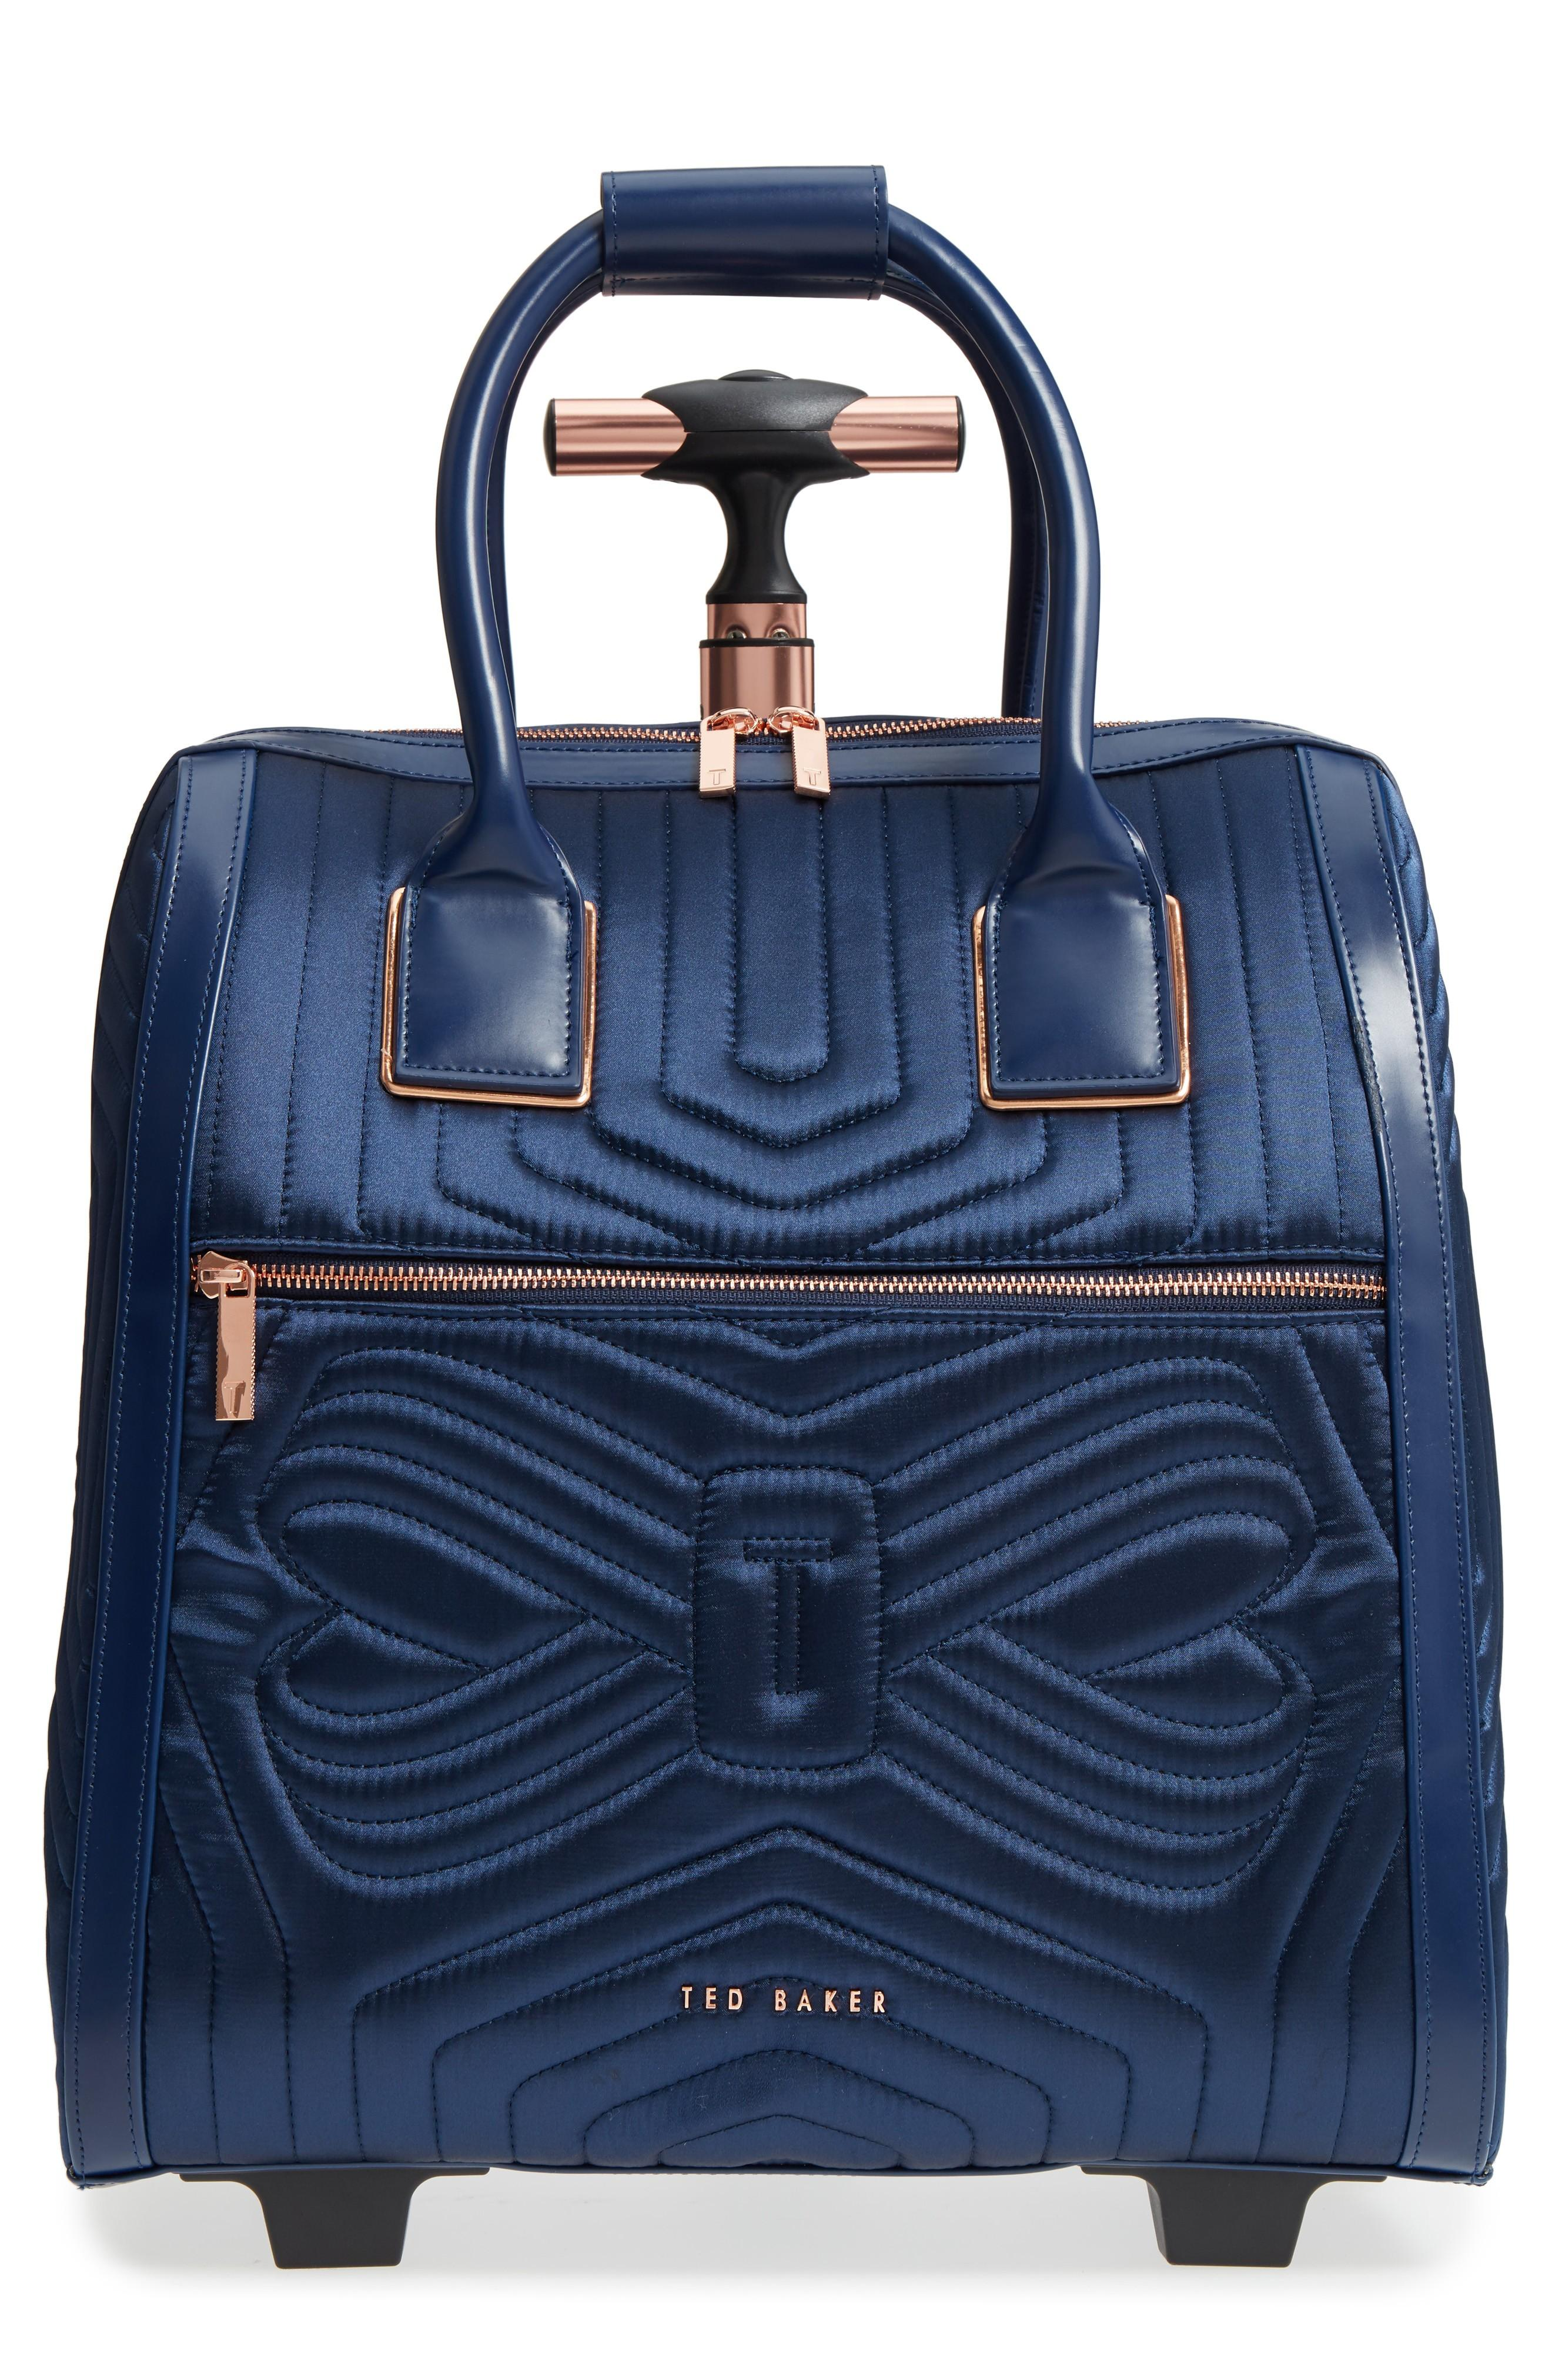 b611e59d1bde Ted Baker Anisee Quilted Wheeled Travel Bag - Blue In Navy